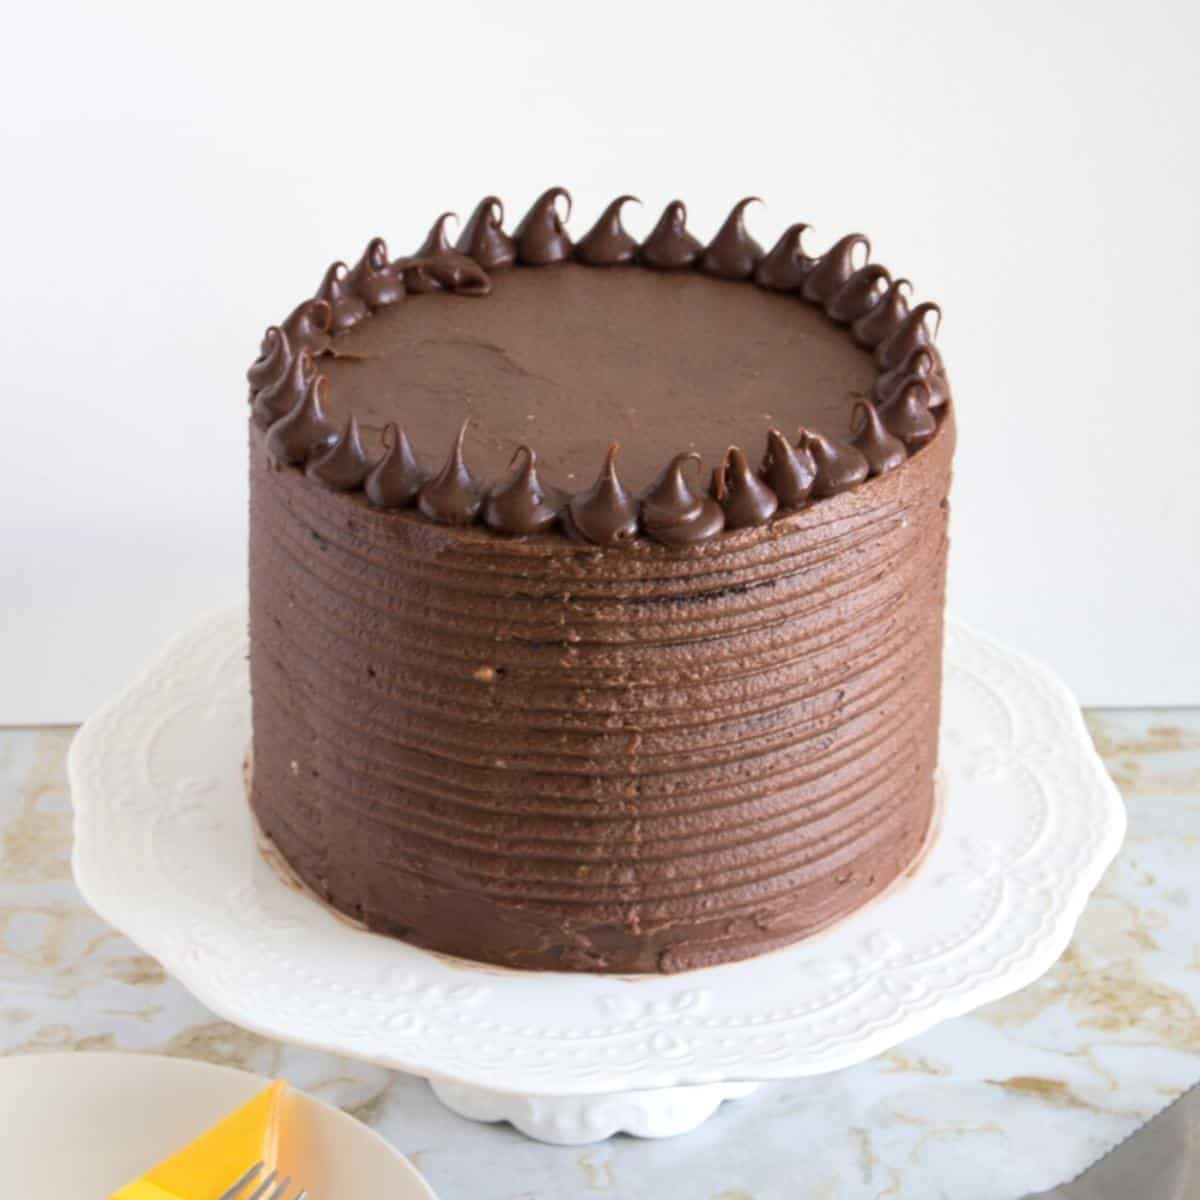 Top view of the chocolate cake